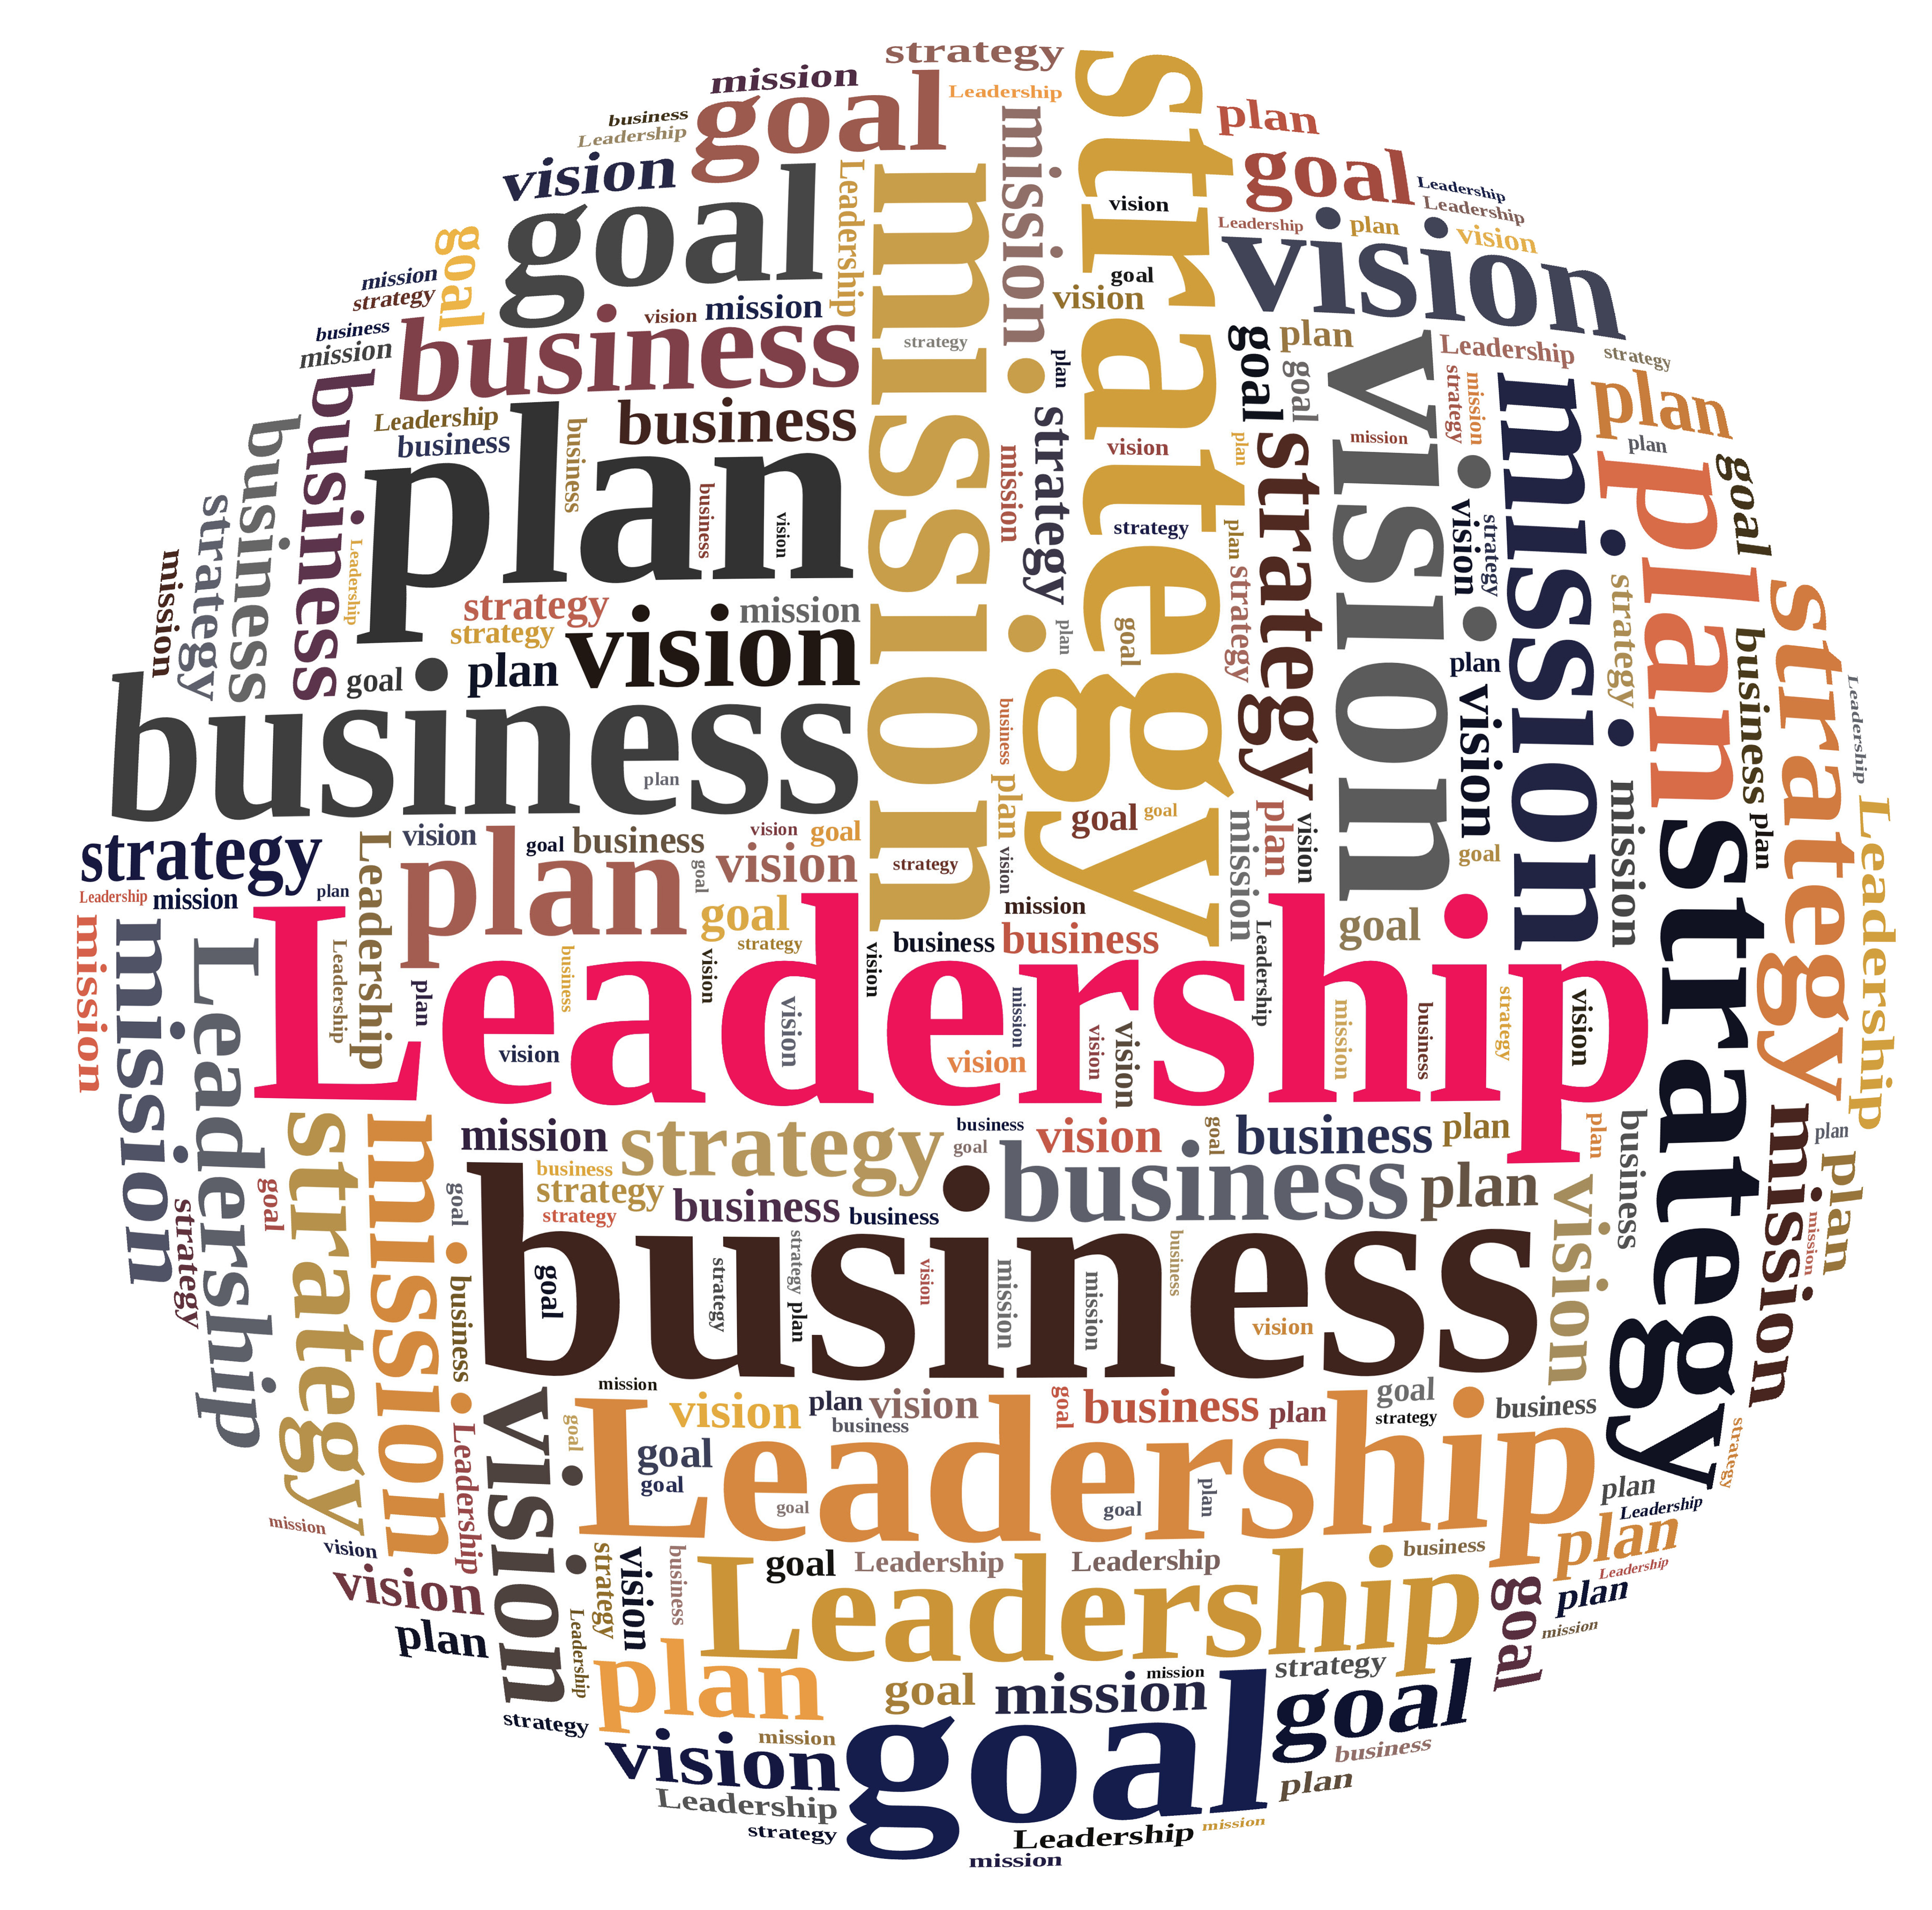 essay on transformational leadership strategy Abstract this essay gives an overview of various leadership types and focuses on the charismatic leadership it attempts to explain the charismatic leadership.